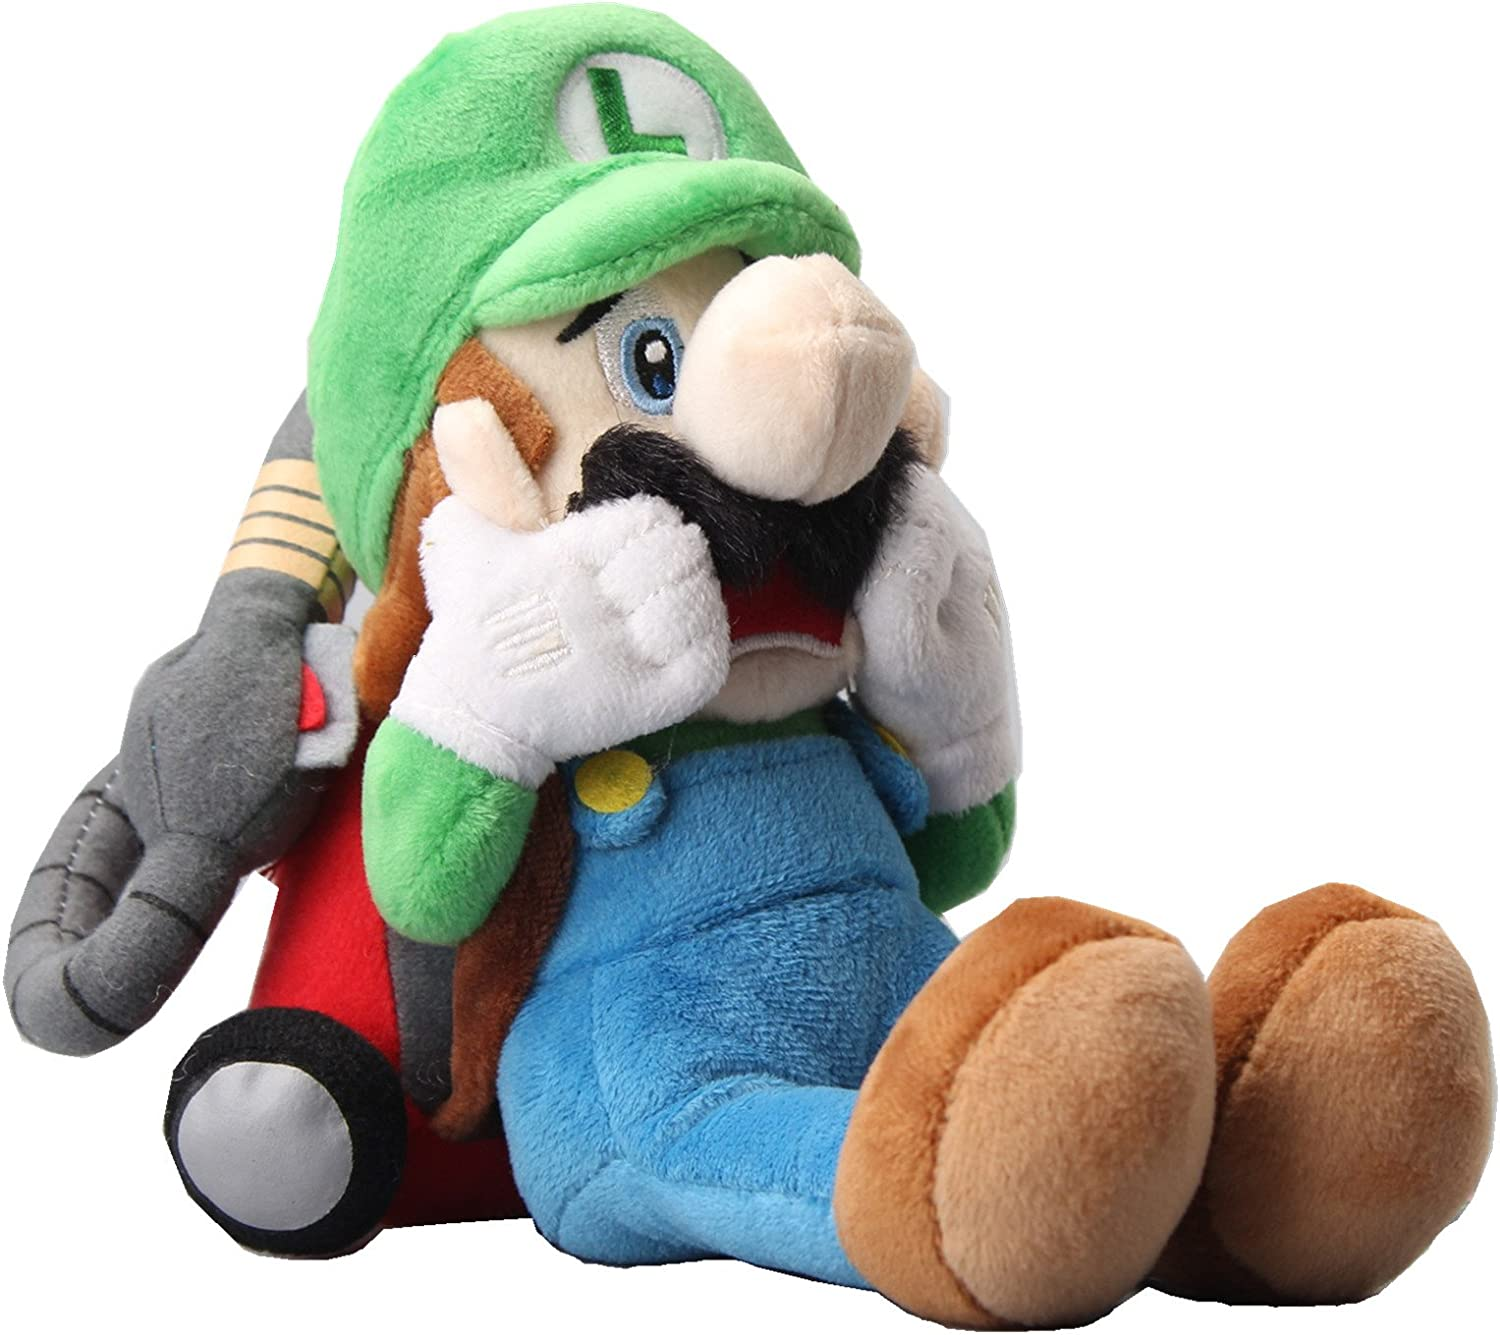 uiuoutoy Super Mario Luigi's Mansion Scared Luigi with Strobulb Plush 10""